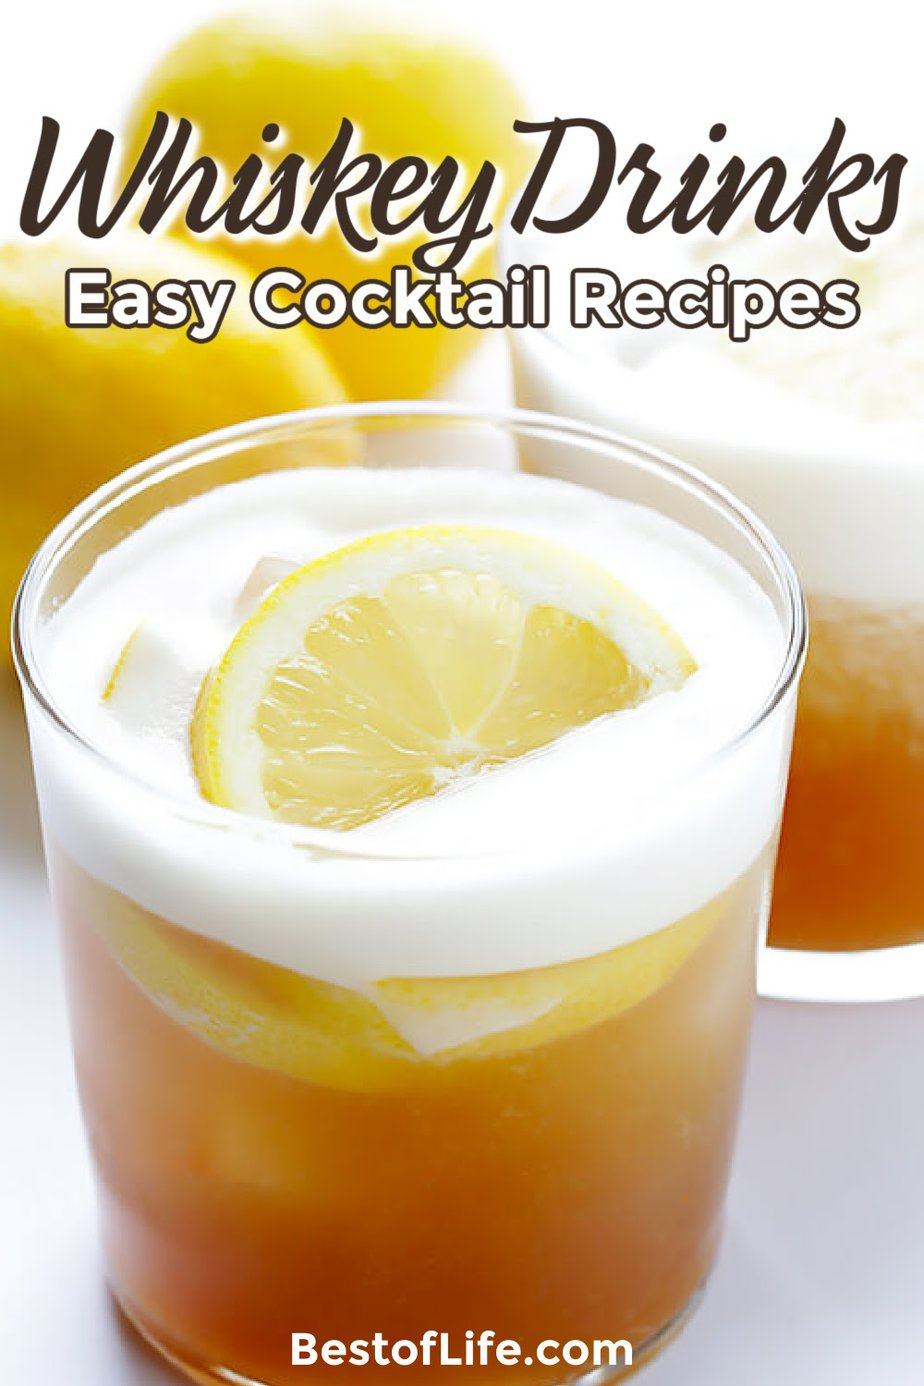 Learn how to enjoy whiskey more with some easy whiskey drinks that just about anyone can make and you may end up with a new favorite happy hour drink. Tips for Drinking Whiskey | Whiskey Drinks | Whiskey Cocktails | Happy Hour Recipes | Winter Cocktail Recipes | Party Cocktail Recipes | Party Drinks | Easy Cocktails #whiskeyrecipes #cocktailrecipes via @thebestoflife